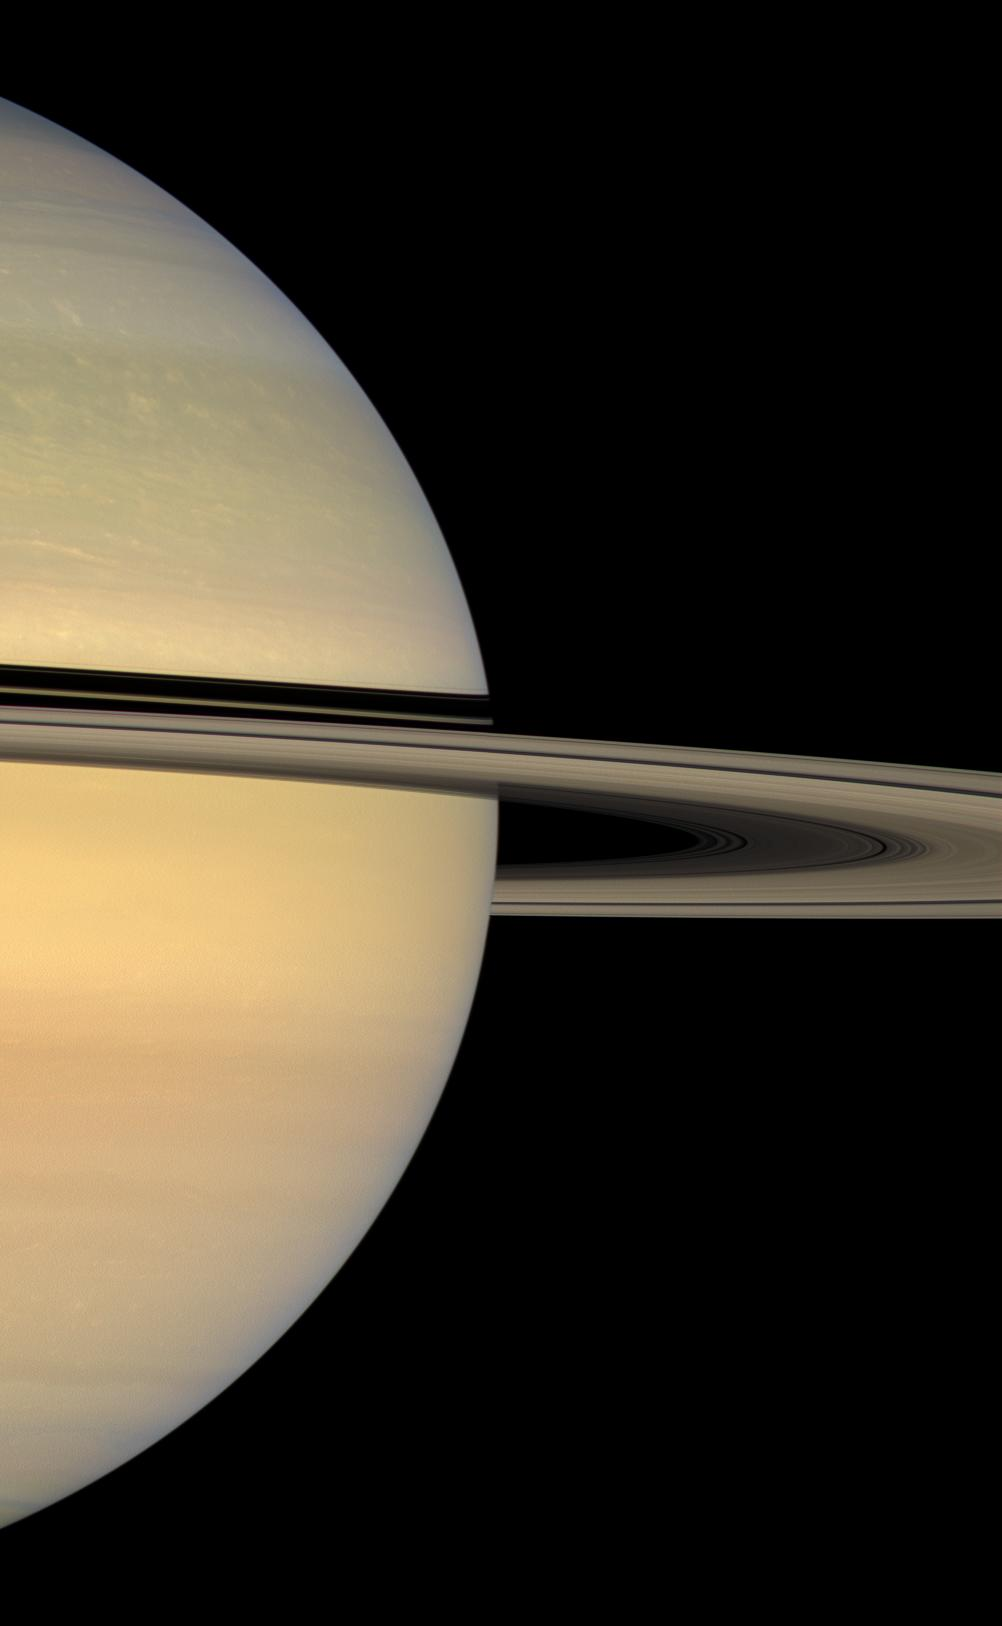 sunlit face of Saturn's rings, whose shadows continue to slide southward on the planet